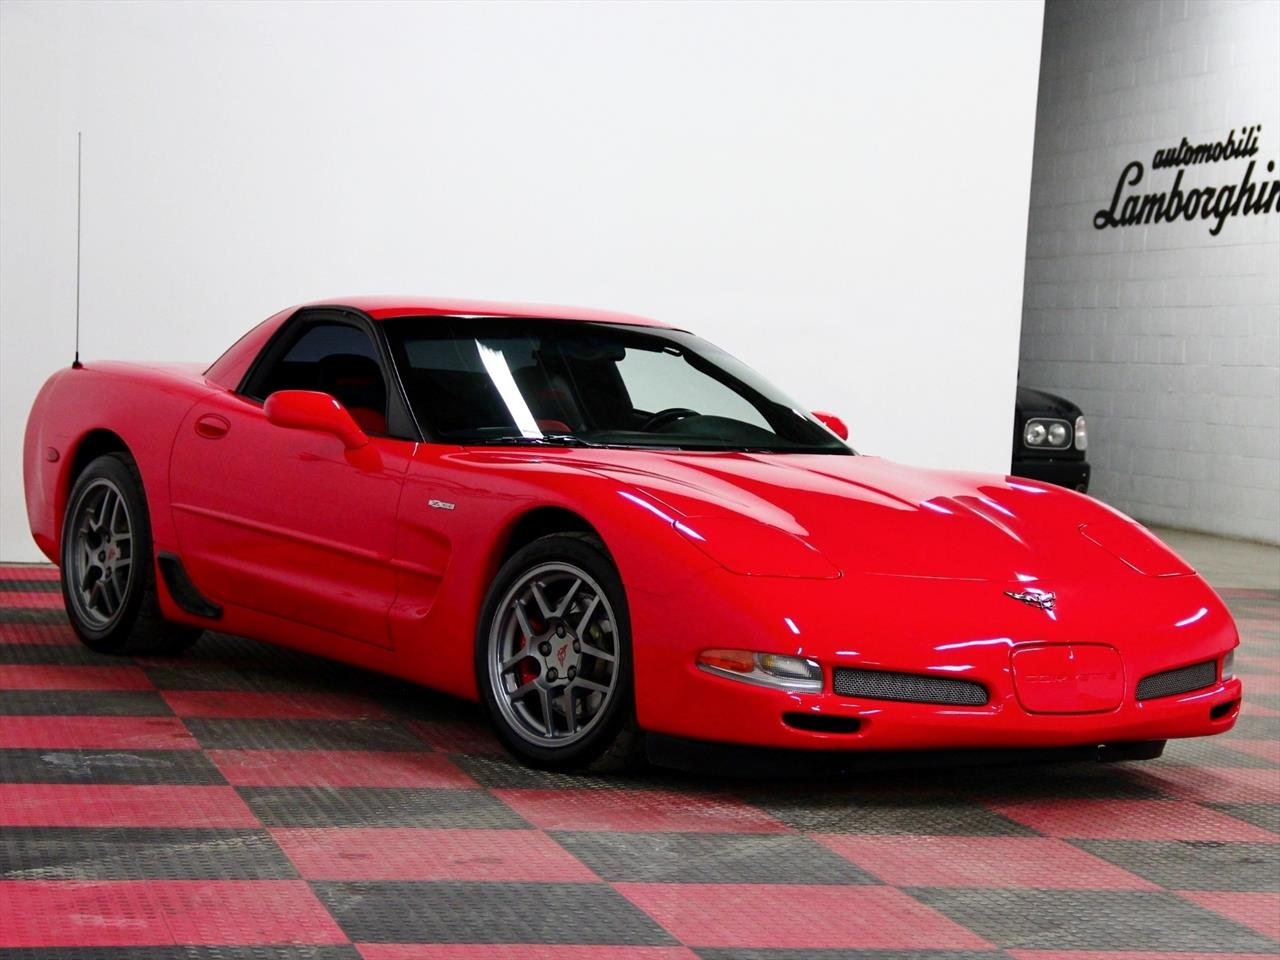 2001 chevrolet corvette z06. Black Bedroom Furniture Sets. Home Design Ideas